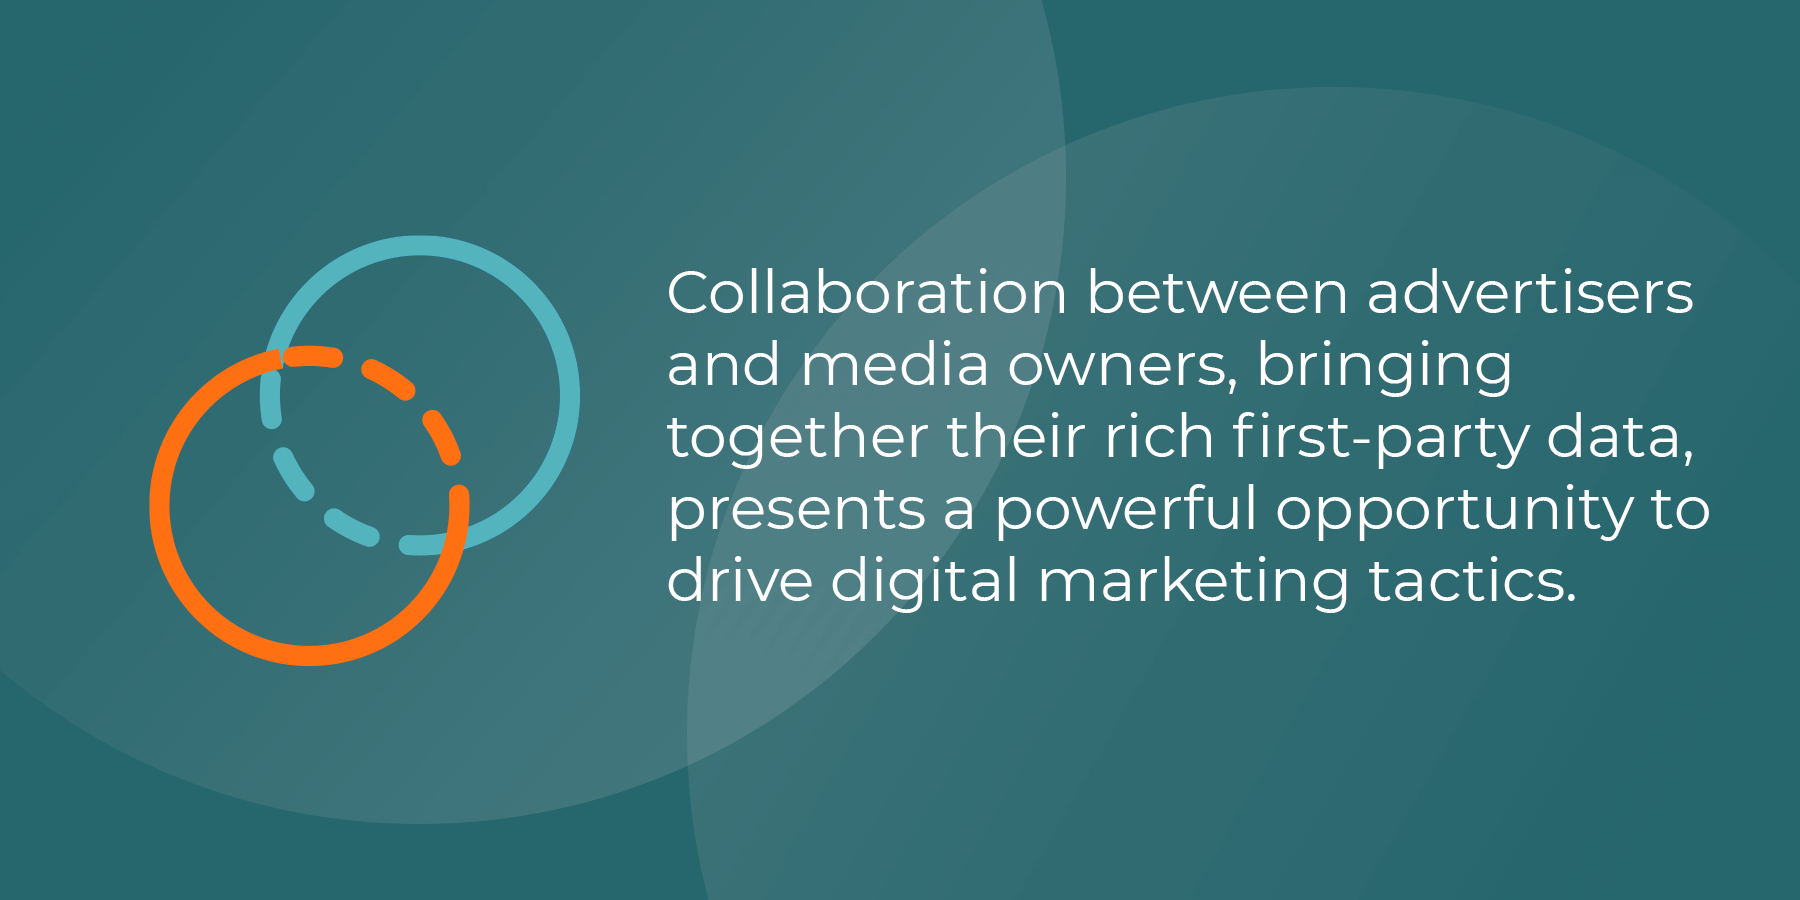 Collaboration between advertisers and media owners, bringing together their rich first-party data, presents a powerful opportunity to drive digital marketing tactics.